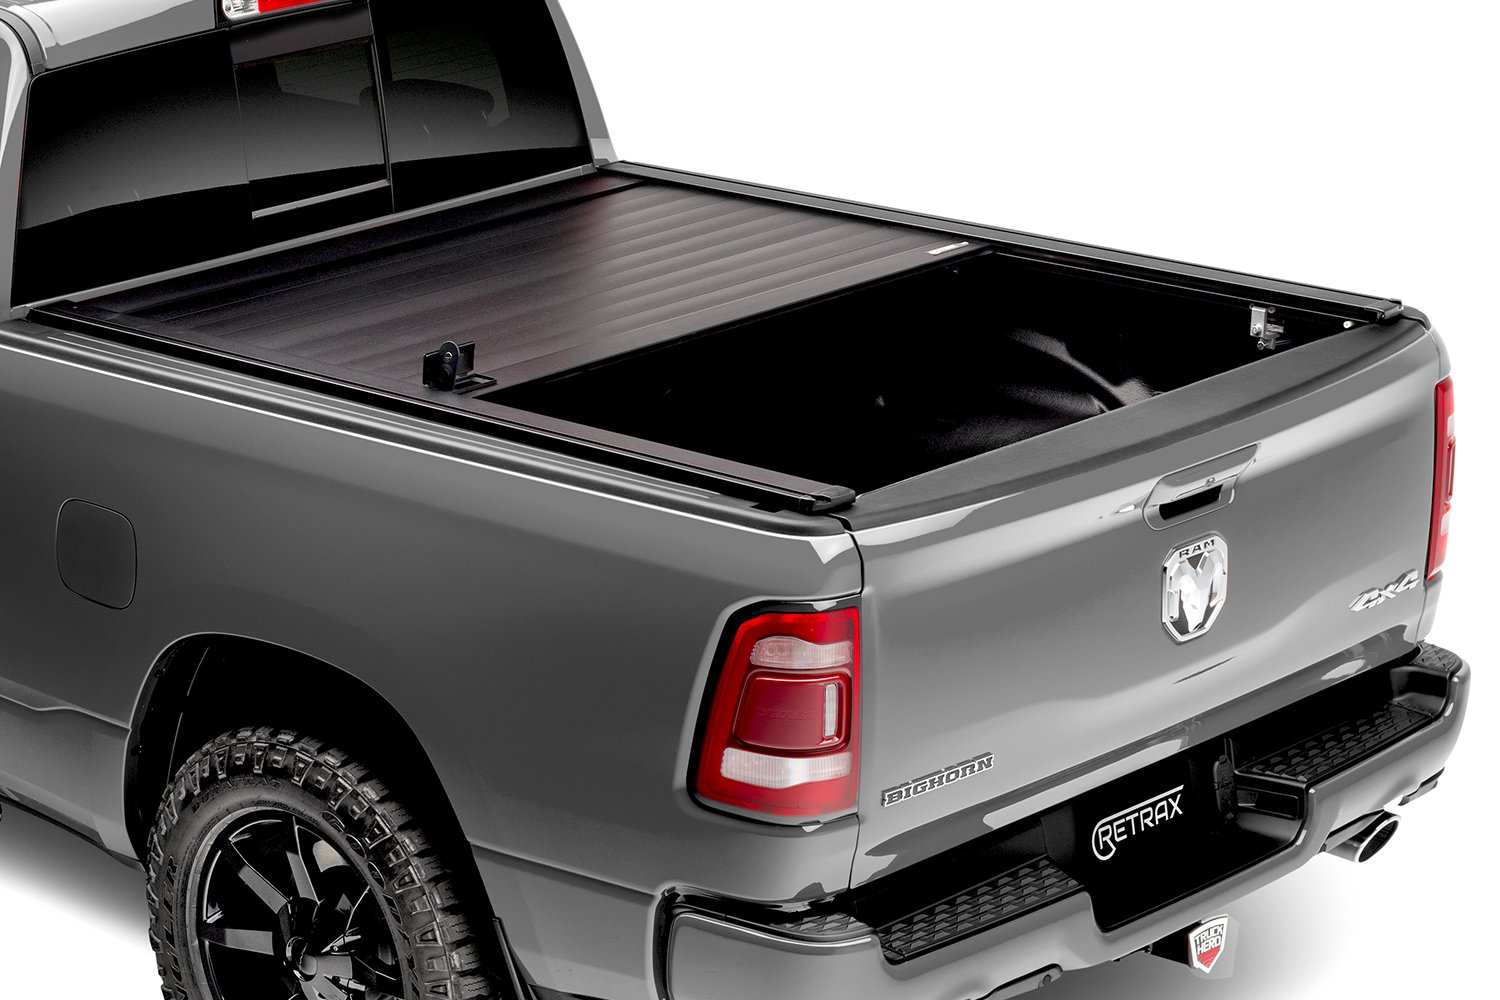 Retrax Pro Tonneau Cover Free Shipping And Price